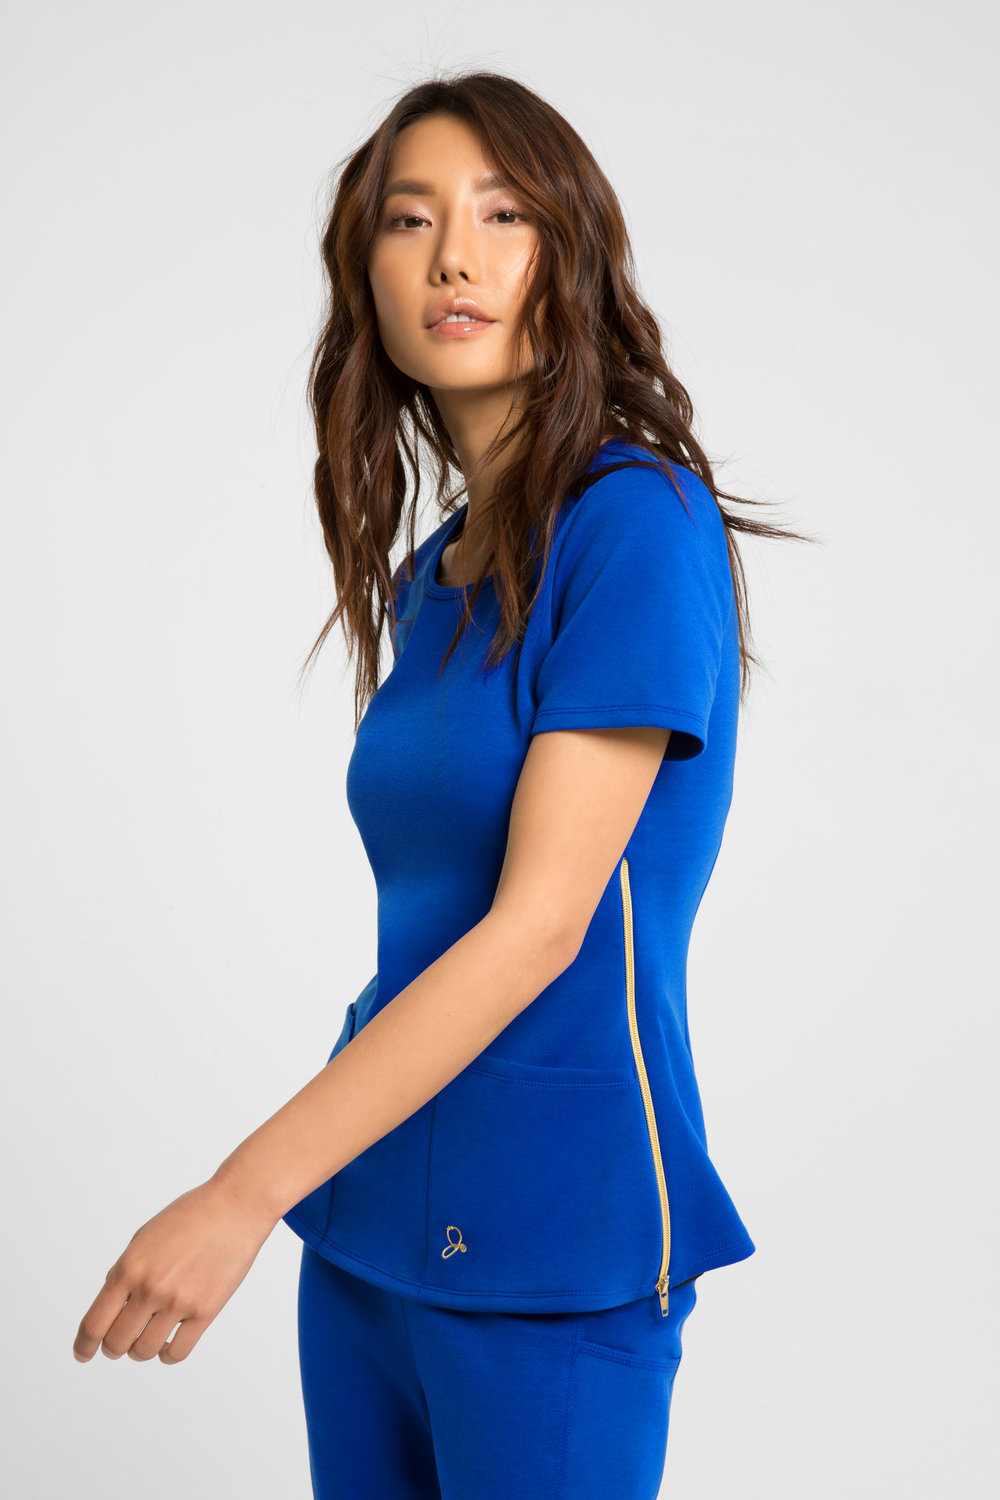 health care age care uniform blue